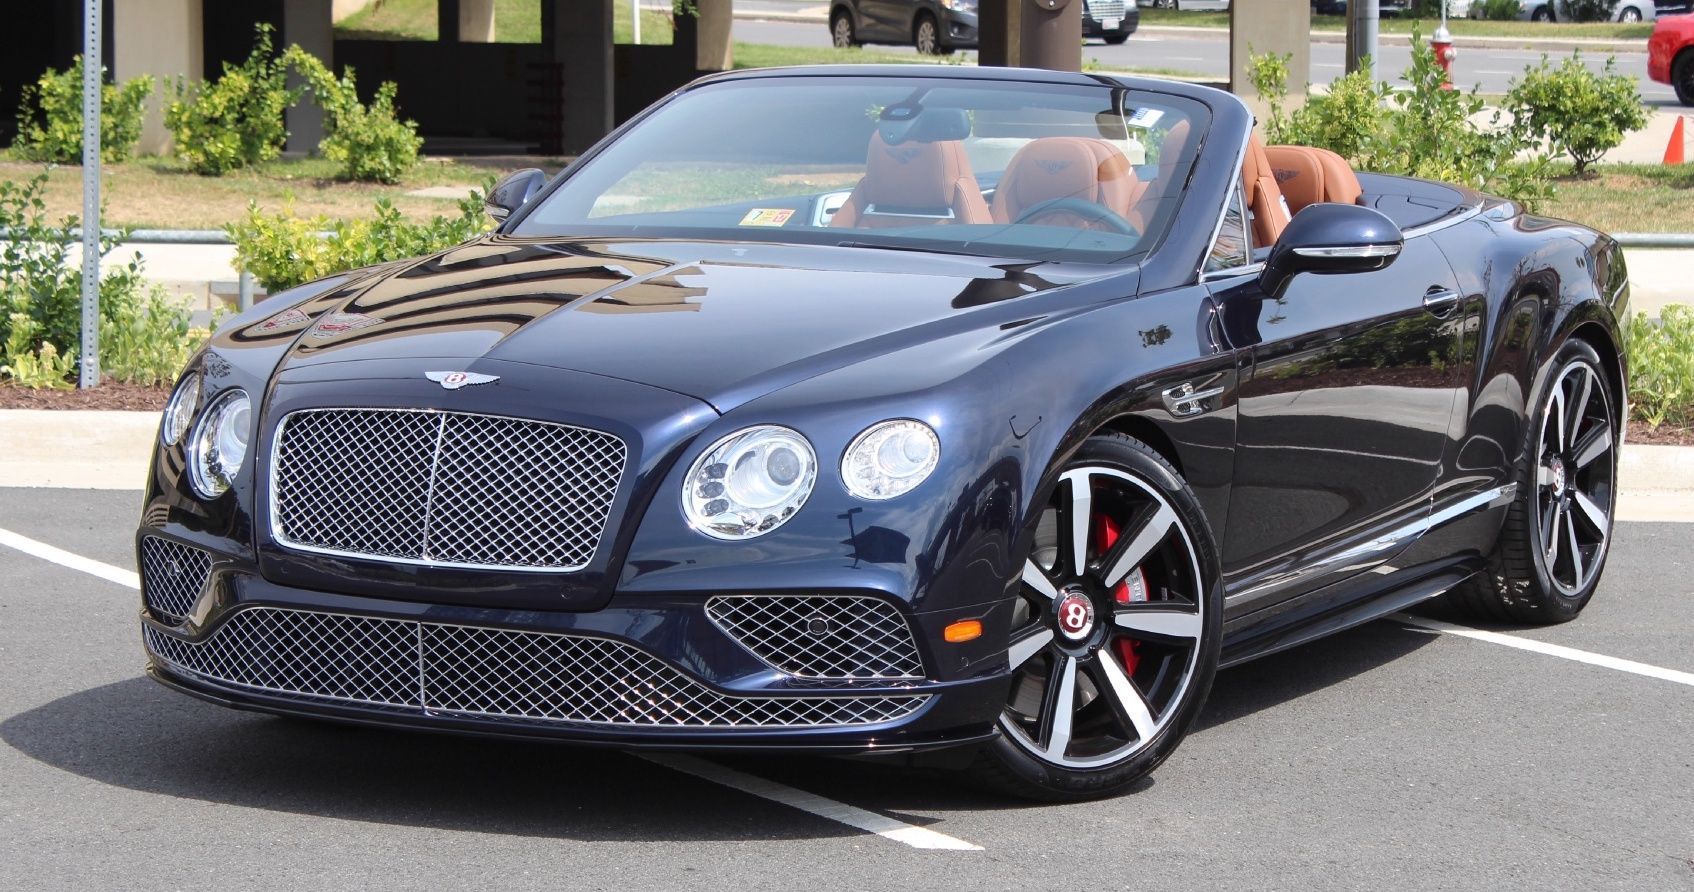 2016 Bentley Continental Gt Lease Your Next Bentley With Premier Financial Services Today Bentle Bentley Continental Gt 2016 Bentley Continental Gt Bentley